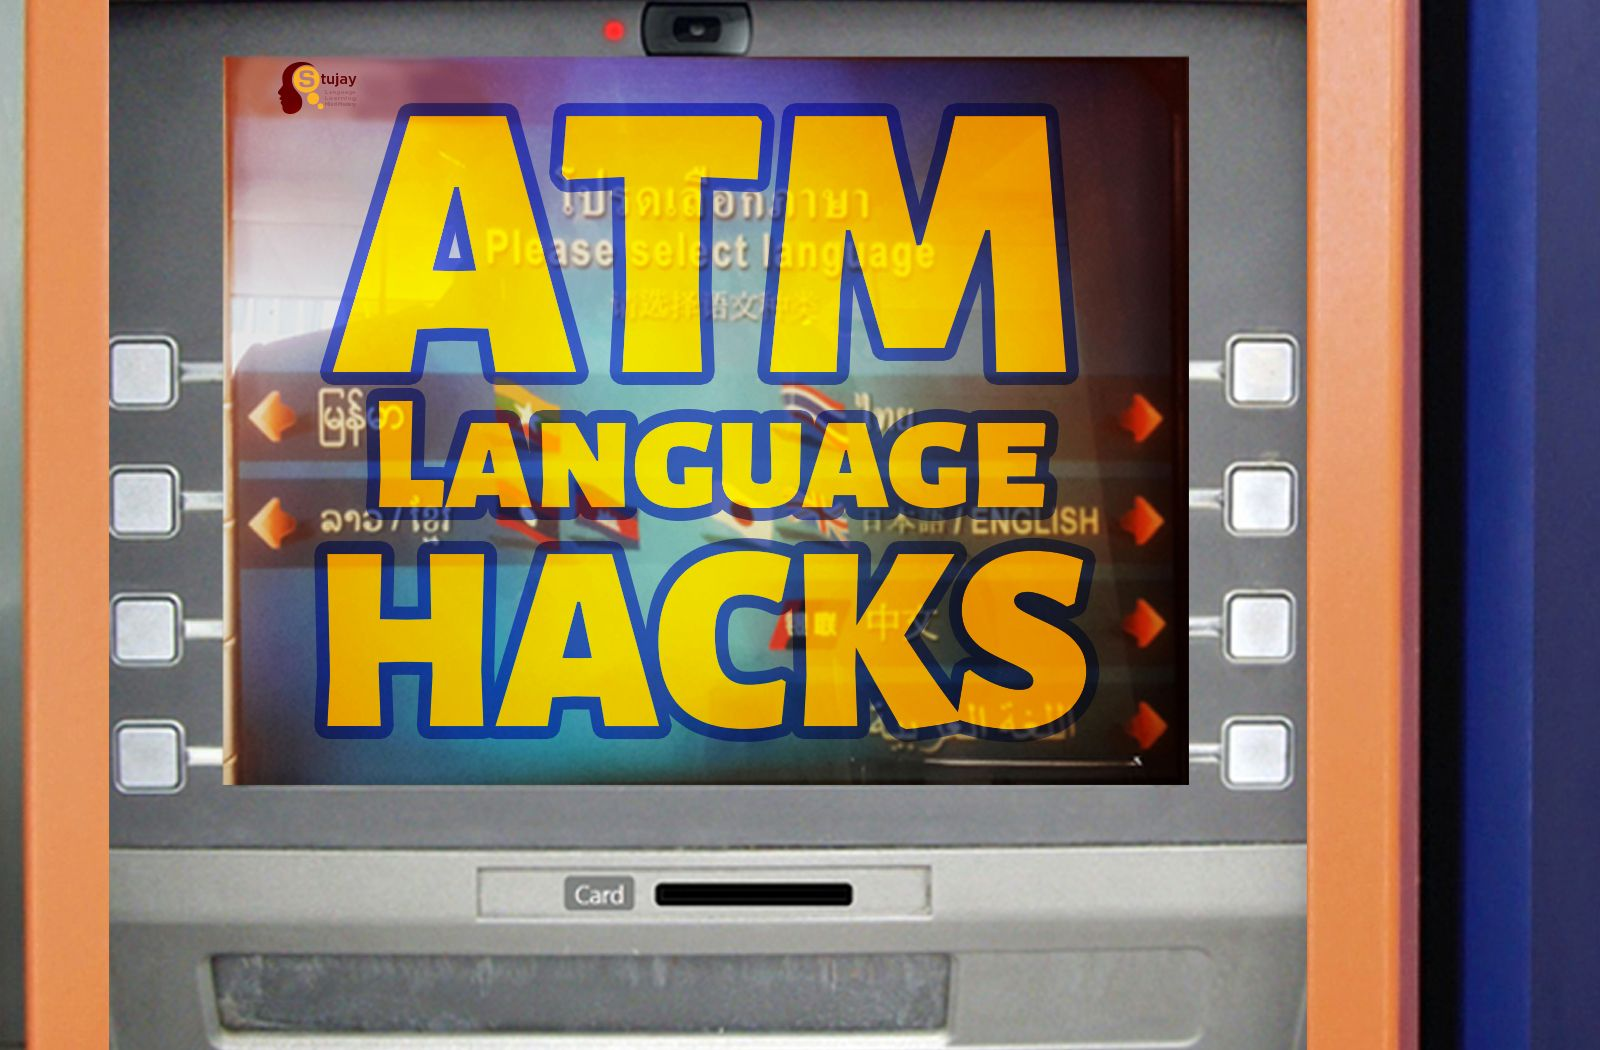 Automatic Teller Machine Hacks - Getting More from your ATM